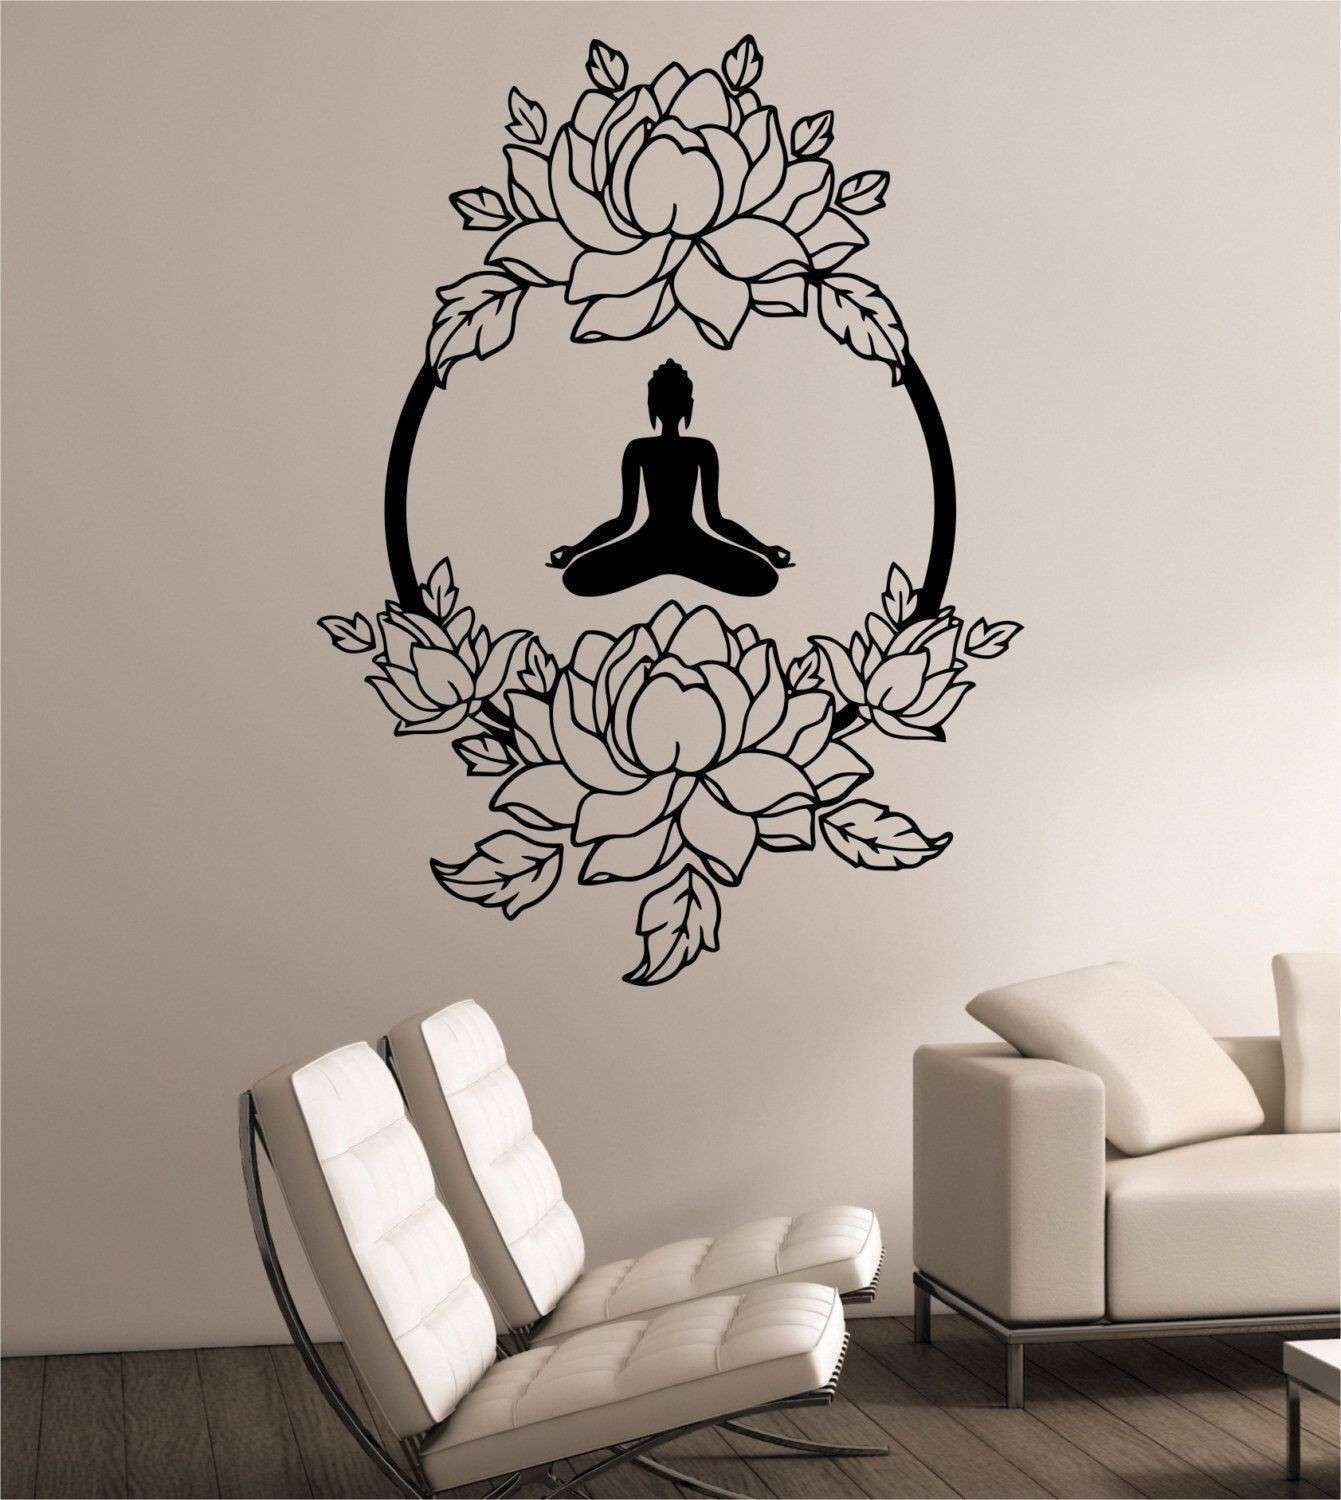 Cool Wall Art For Bedroom Fresh Wall Decal Luxury 1 Kirkland Wall With Regard To Best And Newest Cool Wall Art (Gallery 8 of 15)